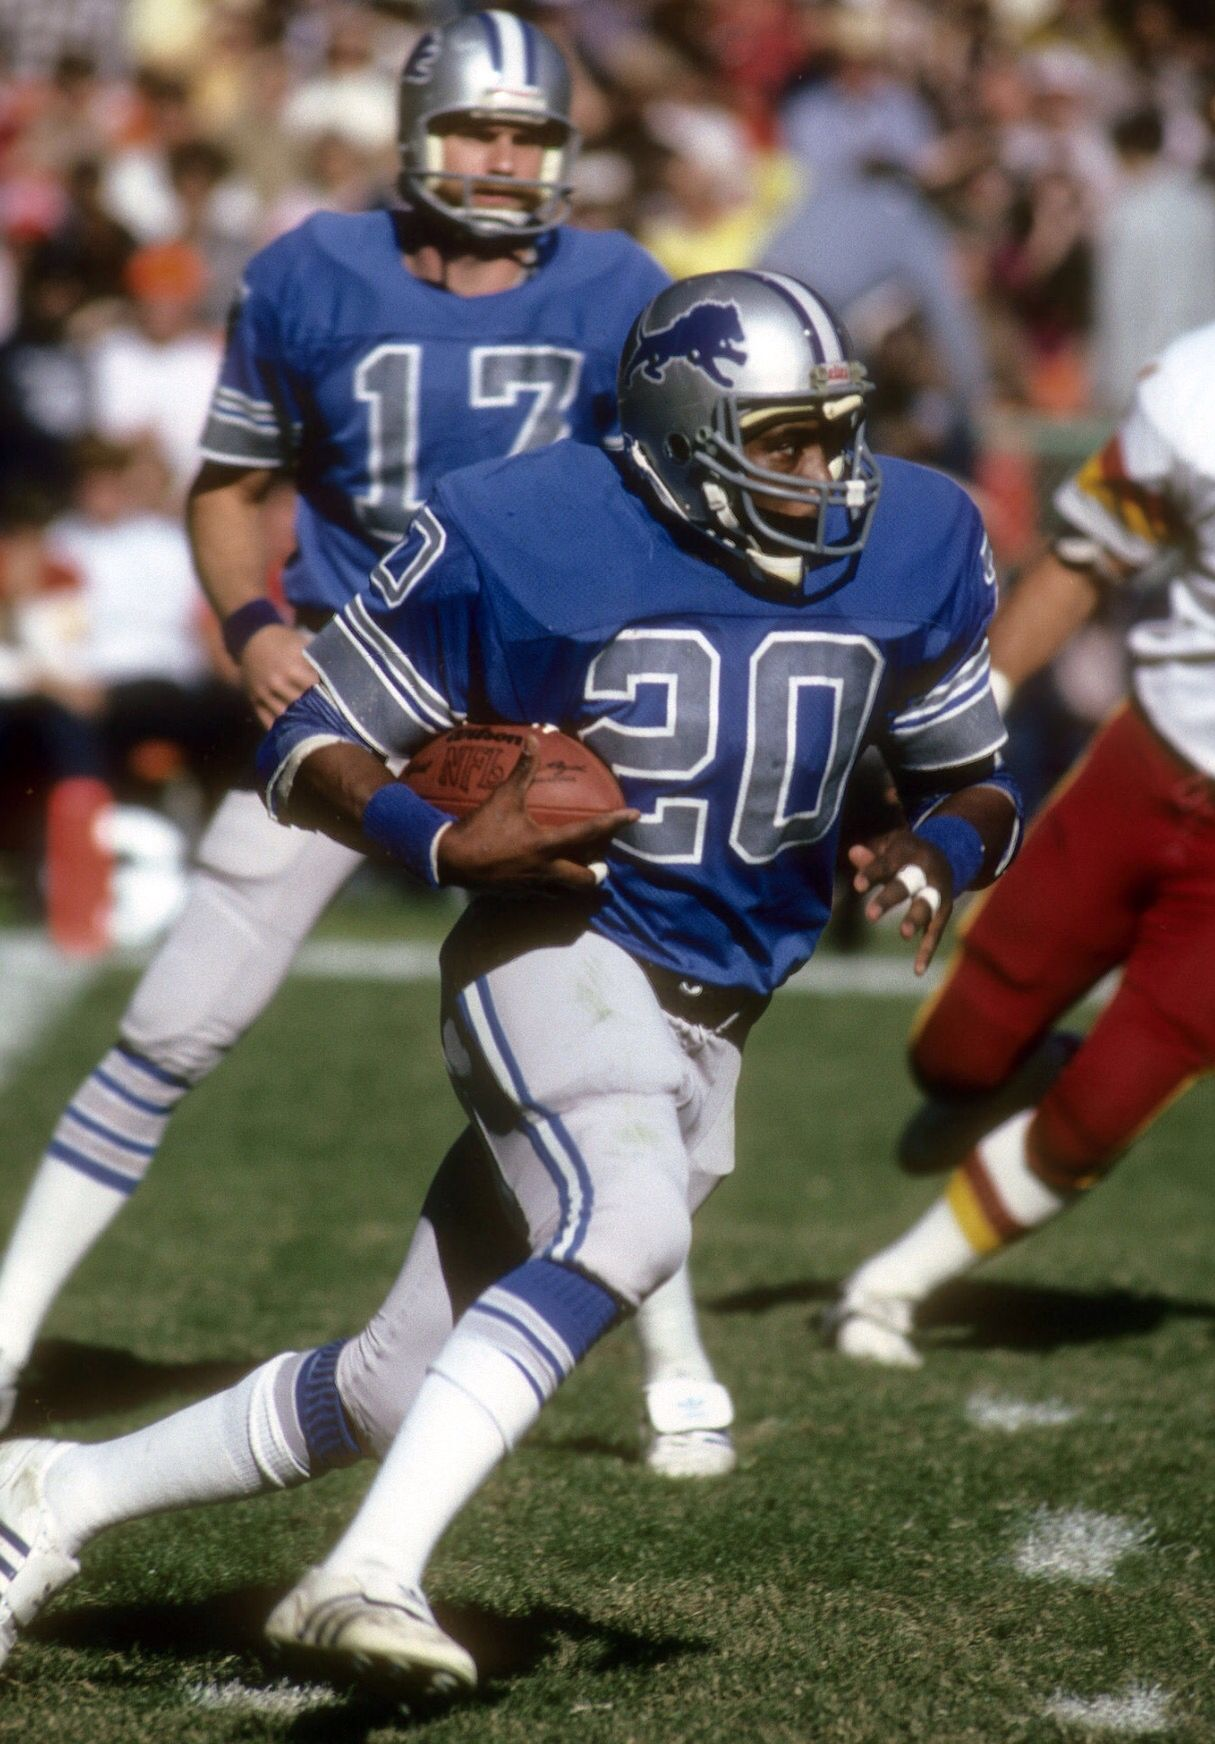 Billy Sims Nfl Detroit Lions Detroit Lions Football Nfl Football Players